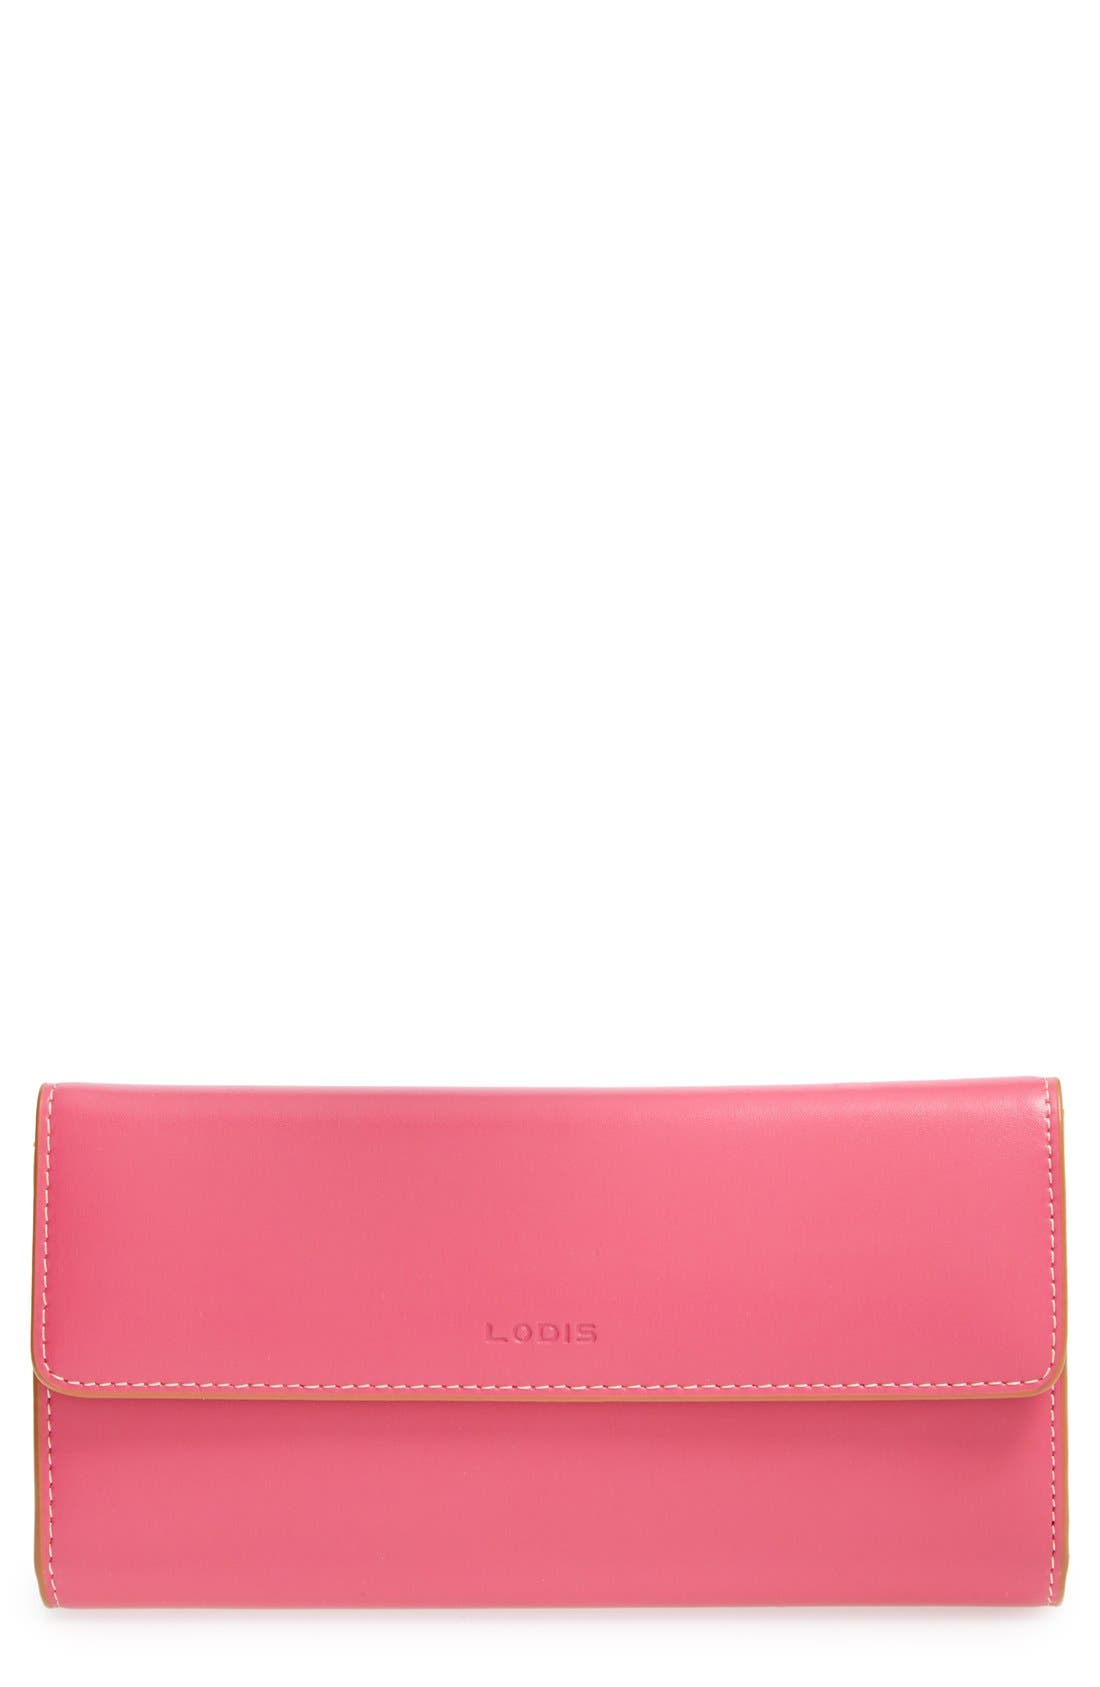 Alternate Image 1 Selected - Lodis 'Audrey' Checkbook Clutch Wallet